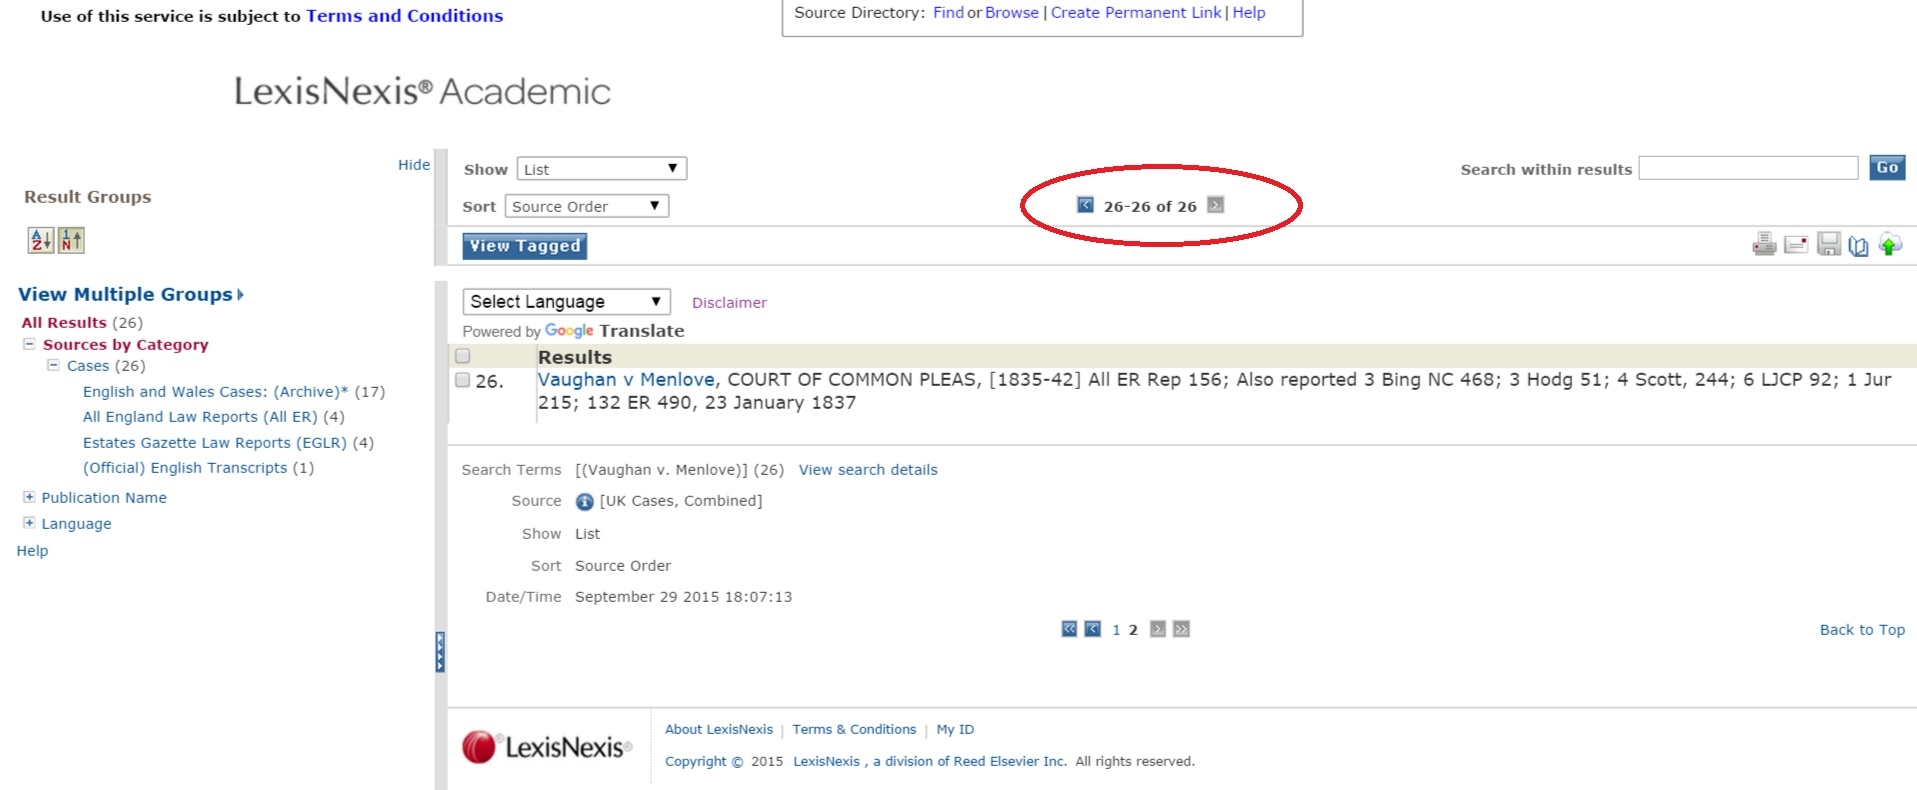 LexisNexis Academic search results screenshot